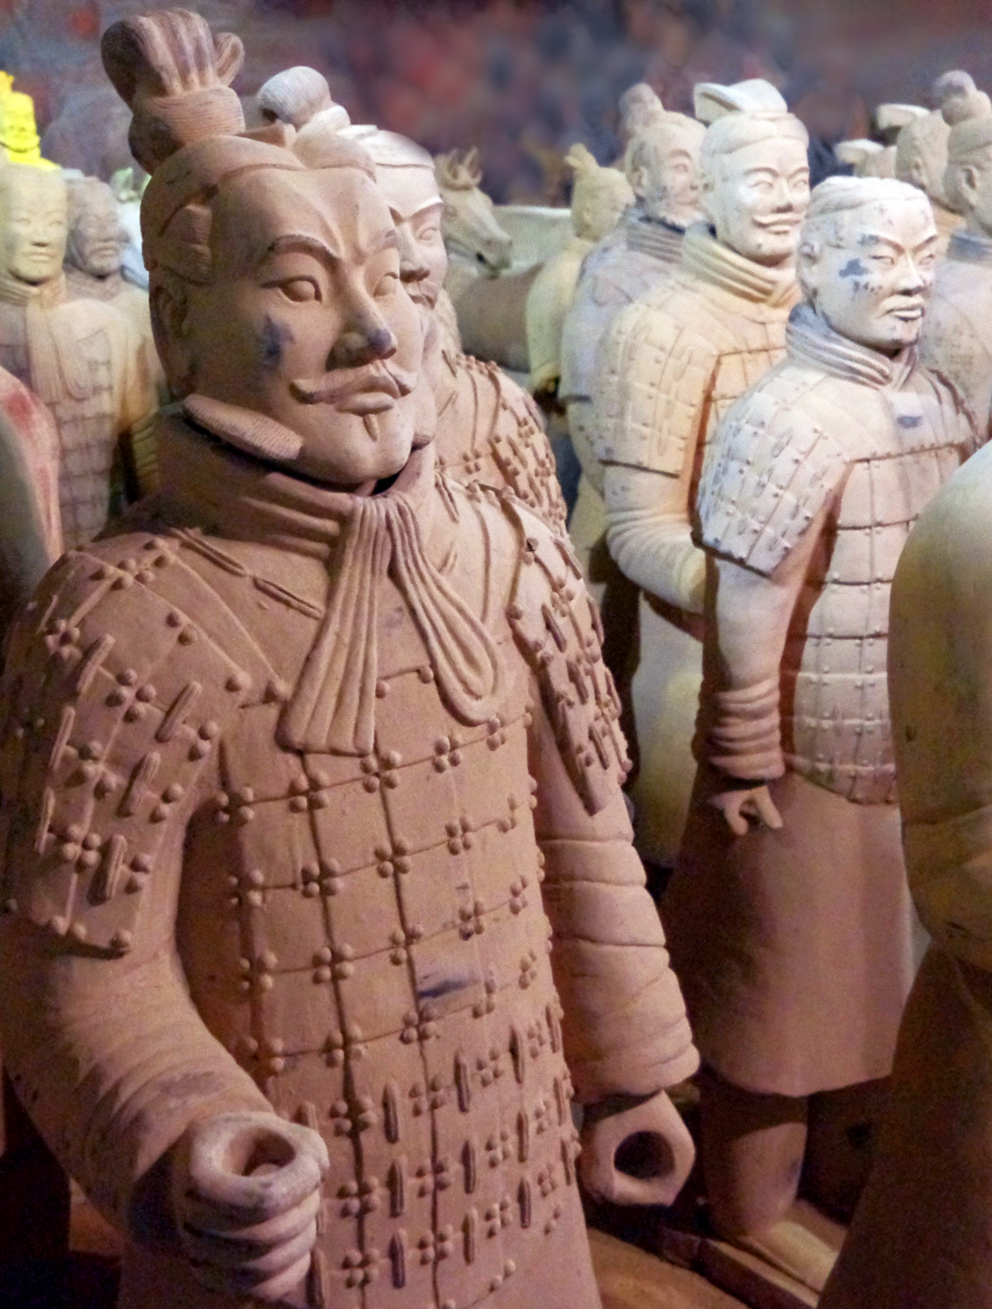 Terracota army gerreros de xi an en barcelona restaurante thai barcelona royal cuisine